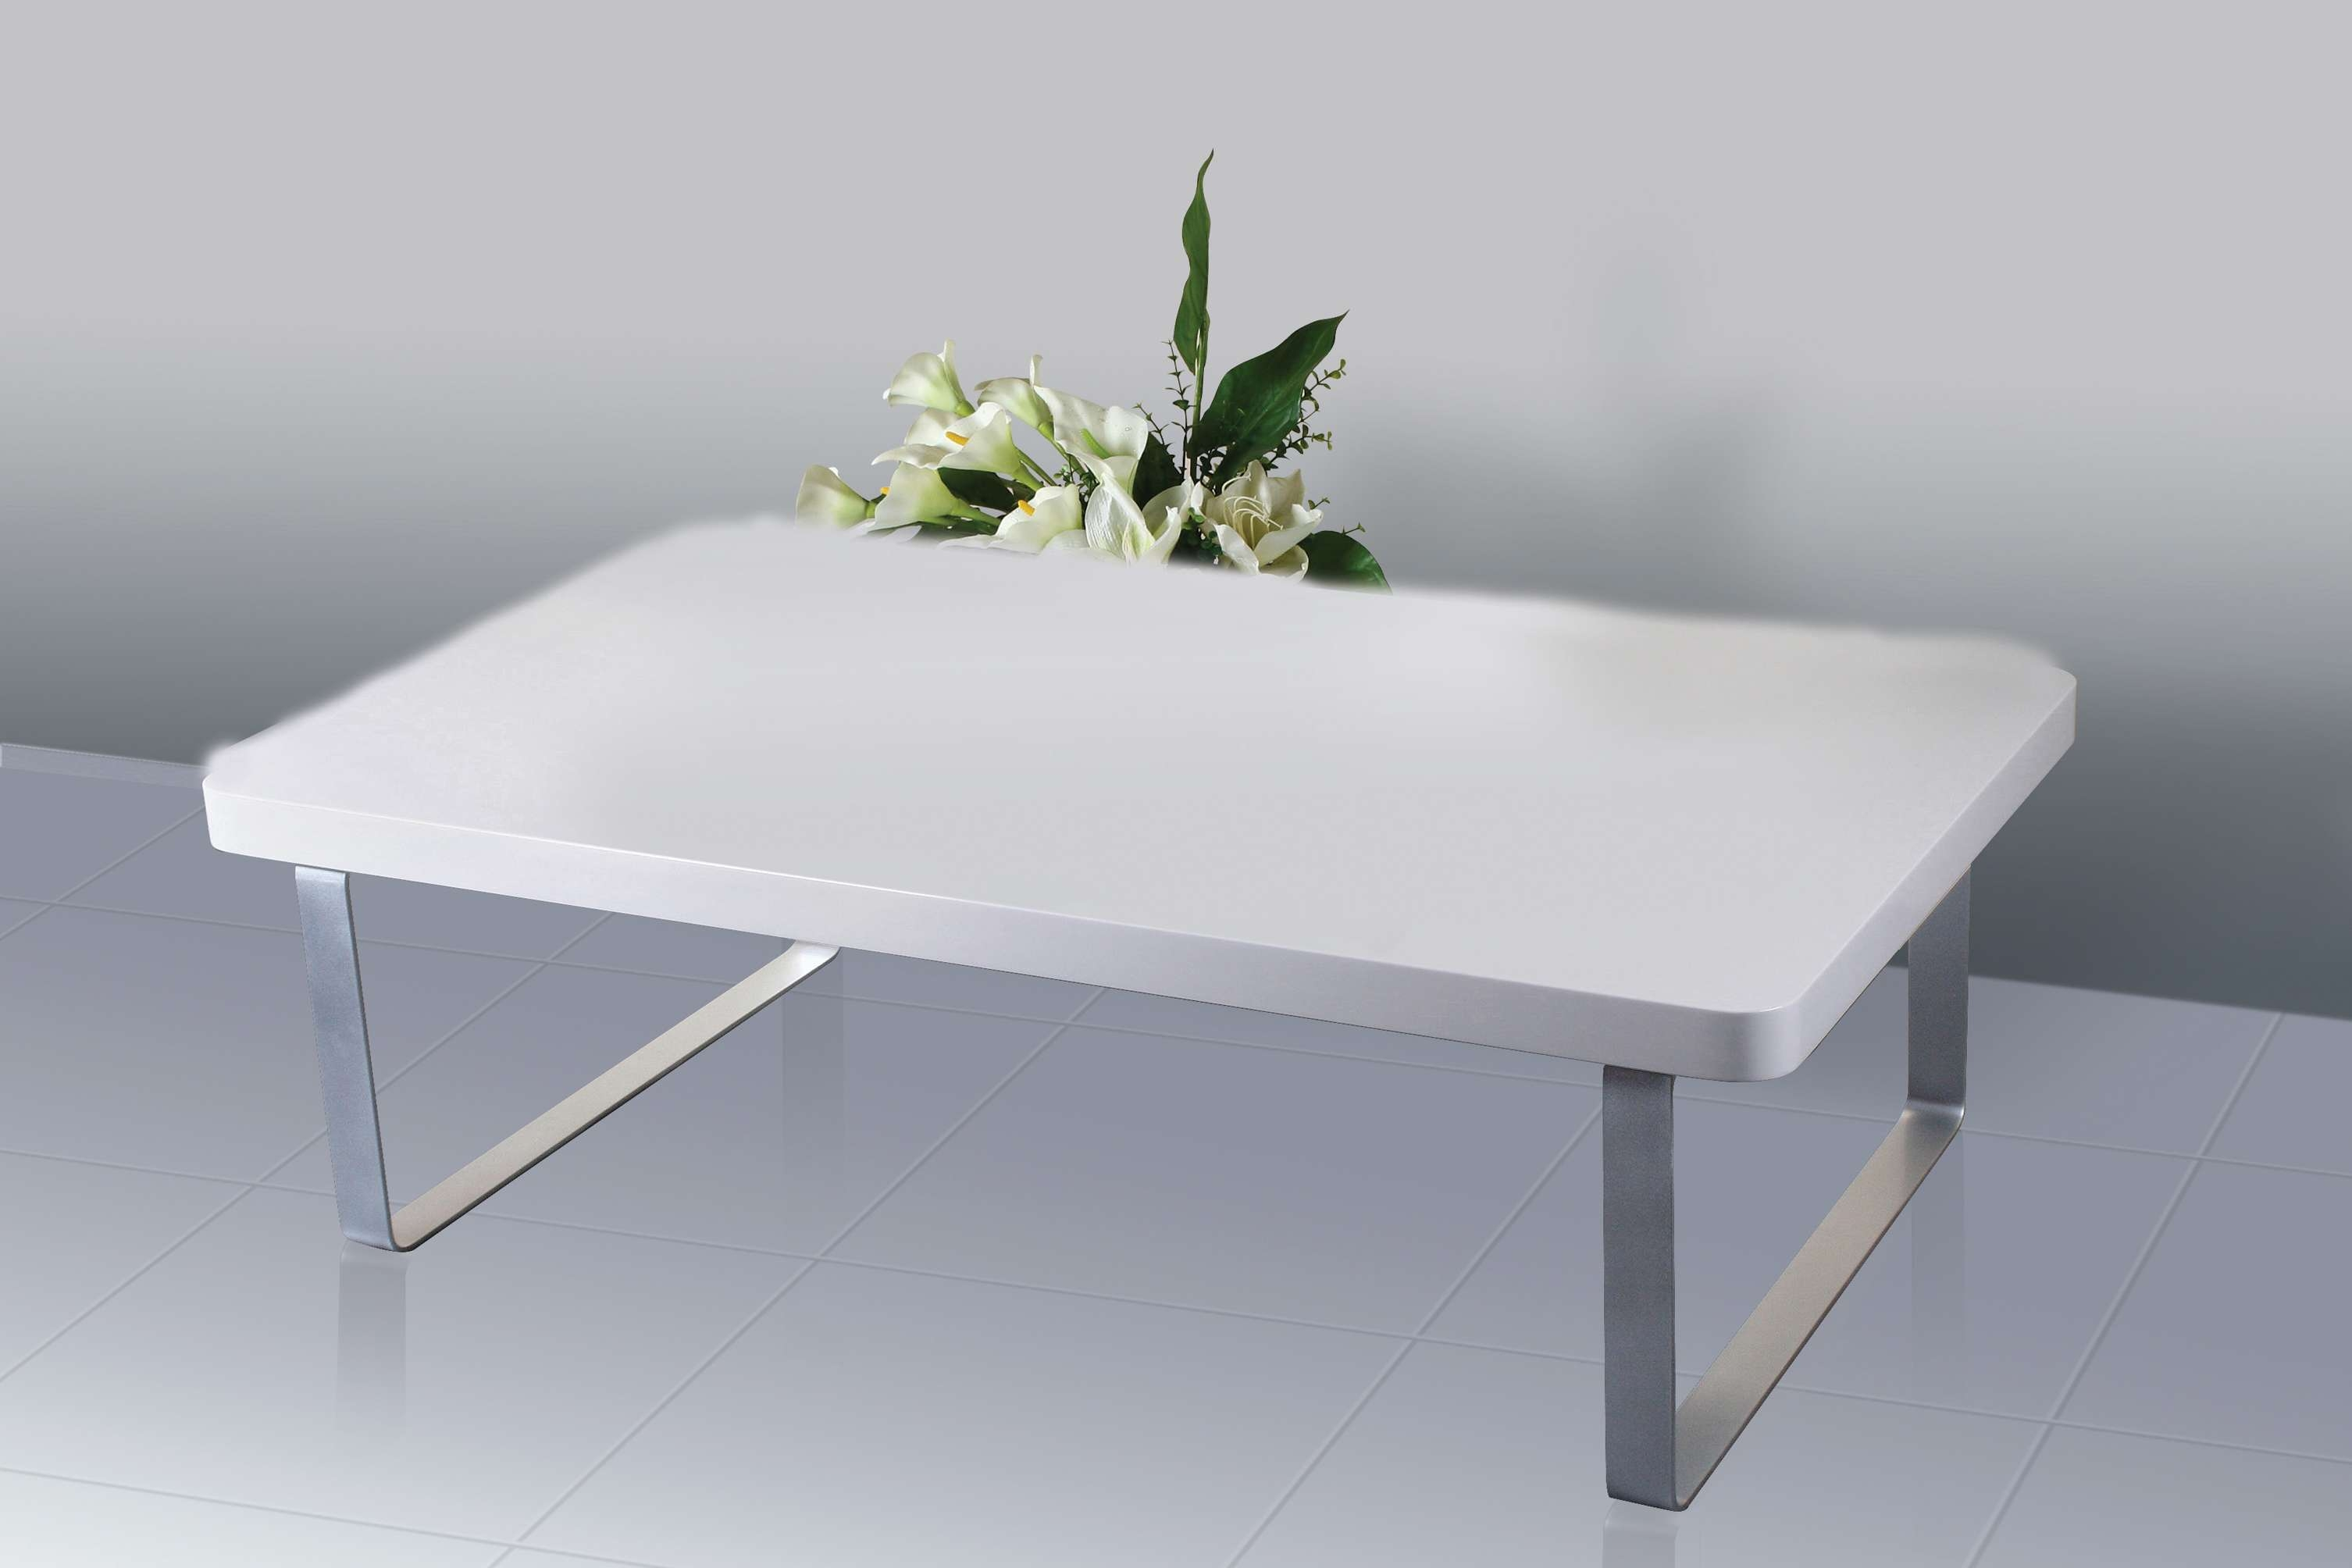 White High Gloss Coffee Table Australia On With Hd Resolution Regarding Favorite White High Gloss Coffee Tables (View 17 of 20)